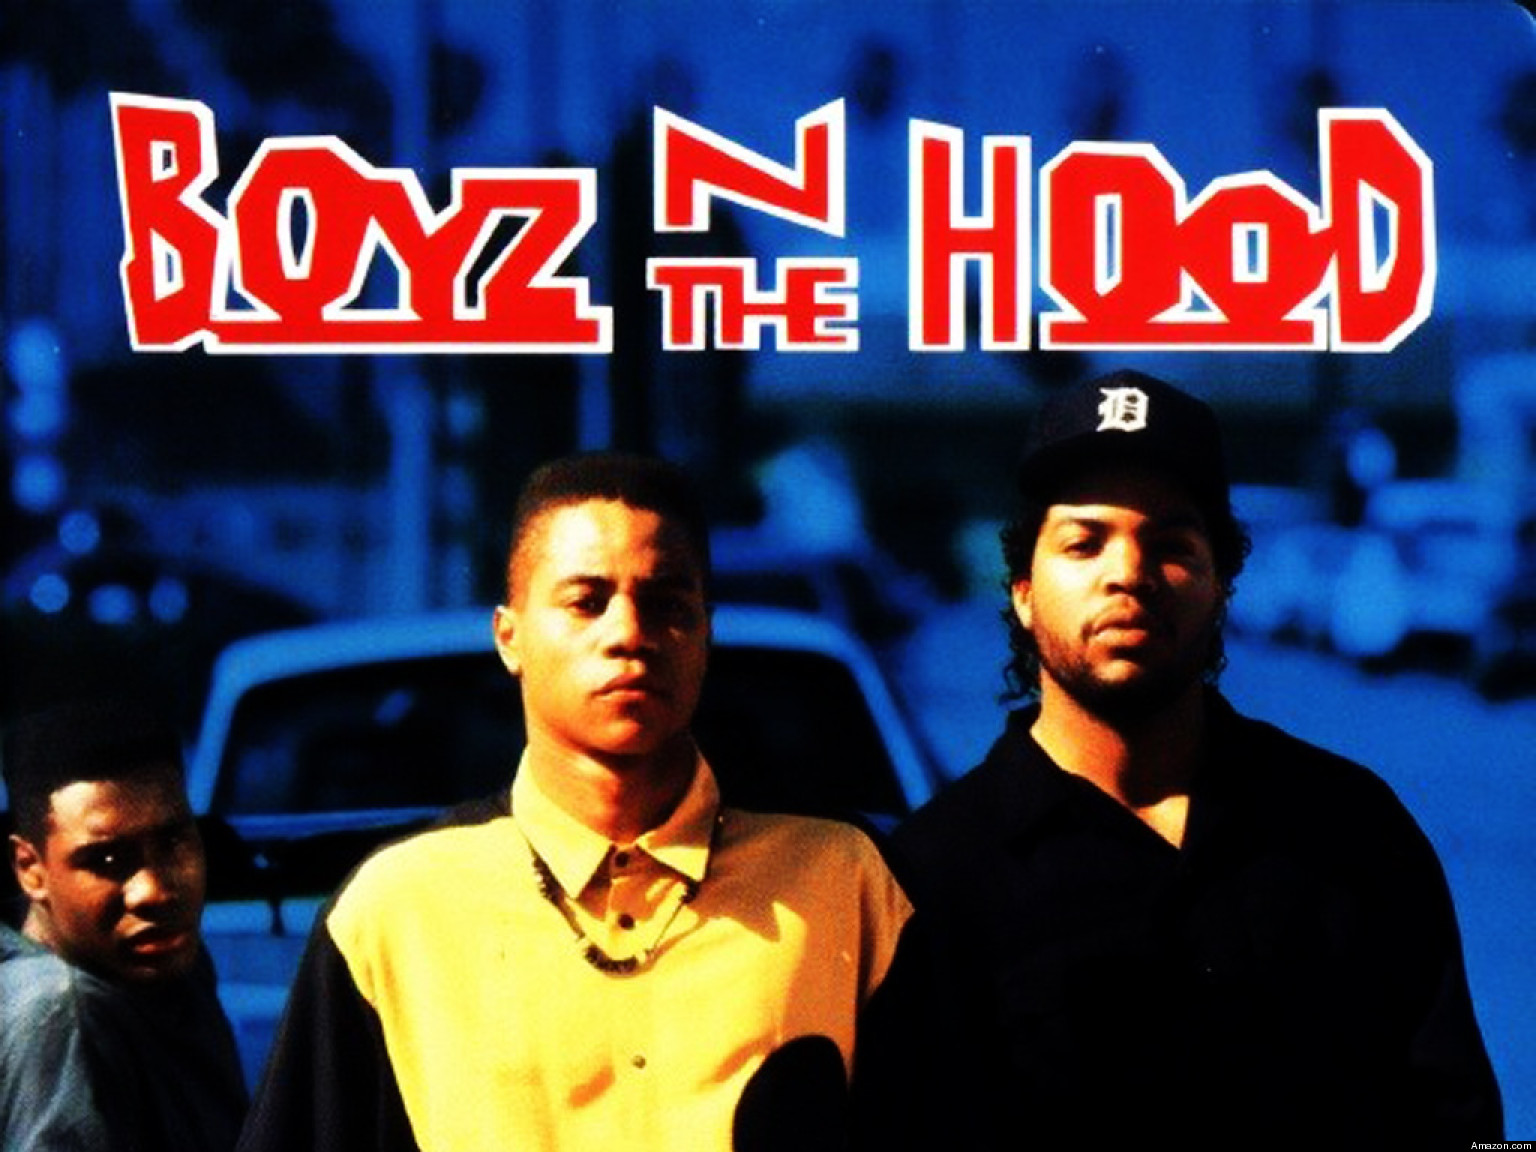 Boyz n the hood photo gallery 50 Best High School Movies m